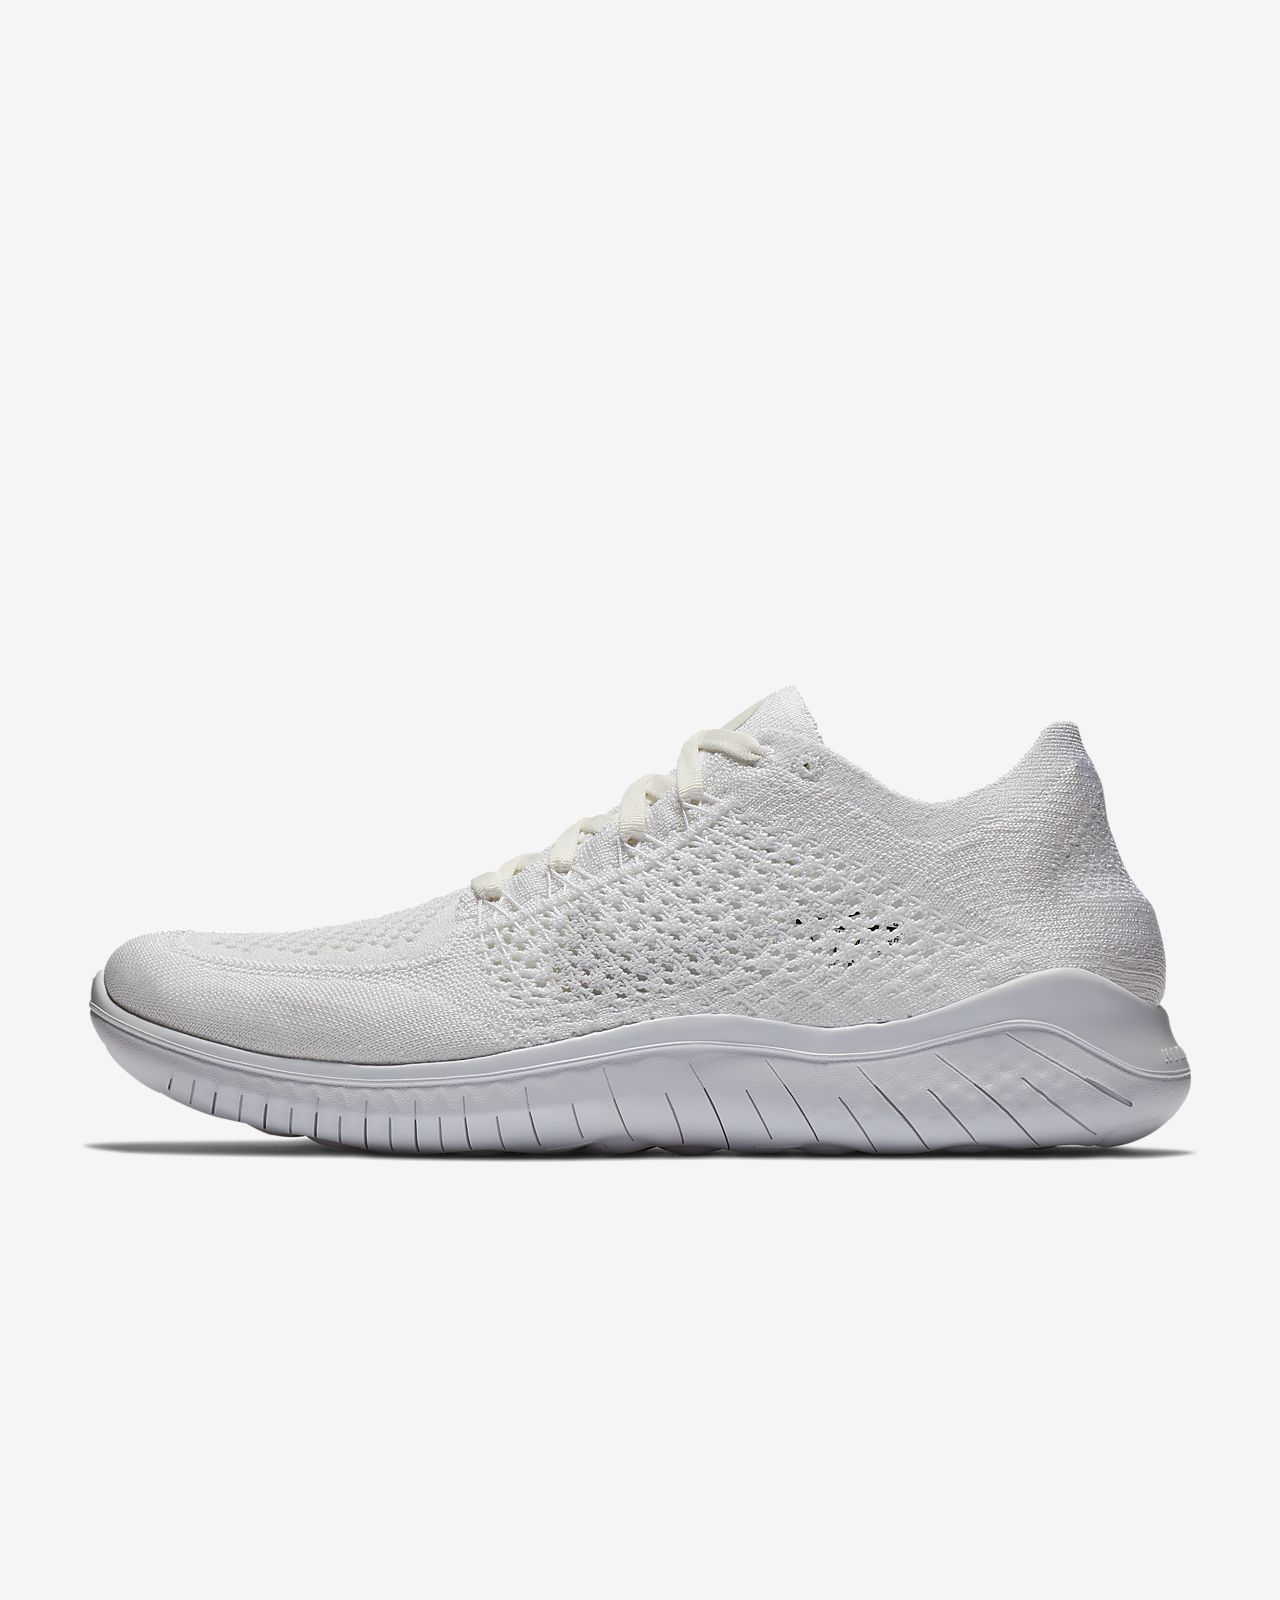 buy popular 1506c 0378a ... Nike Free RN Flyknit 2018 Men s Running Shoe